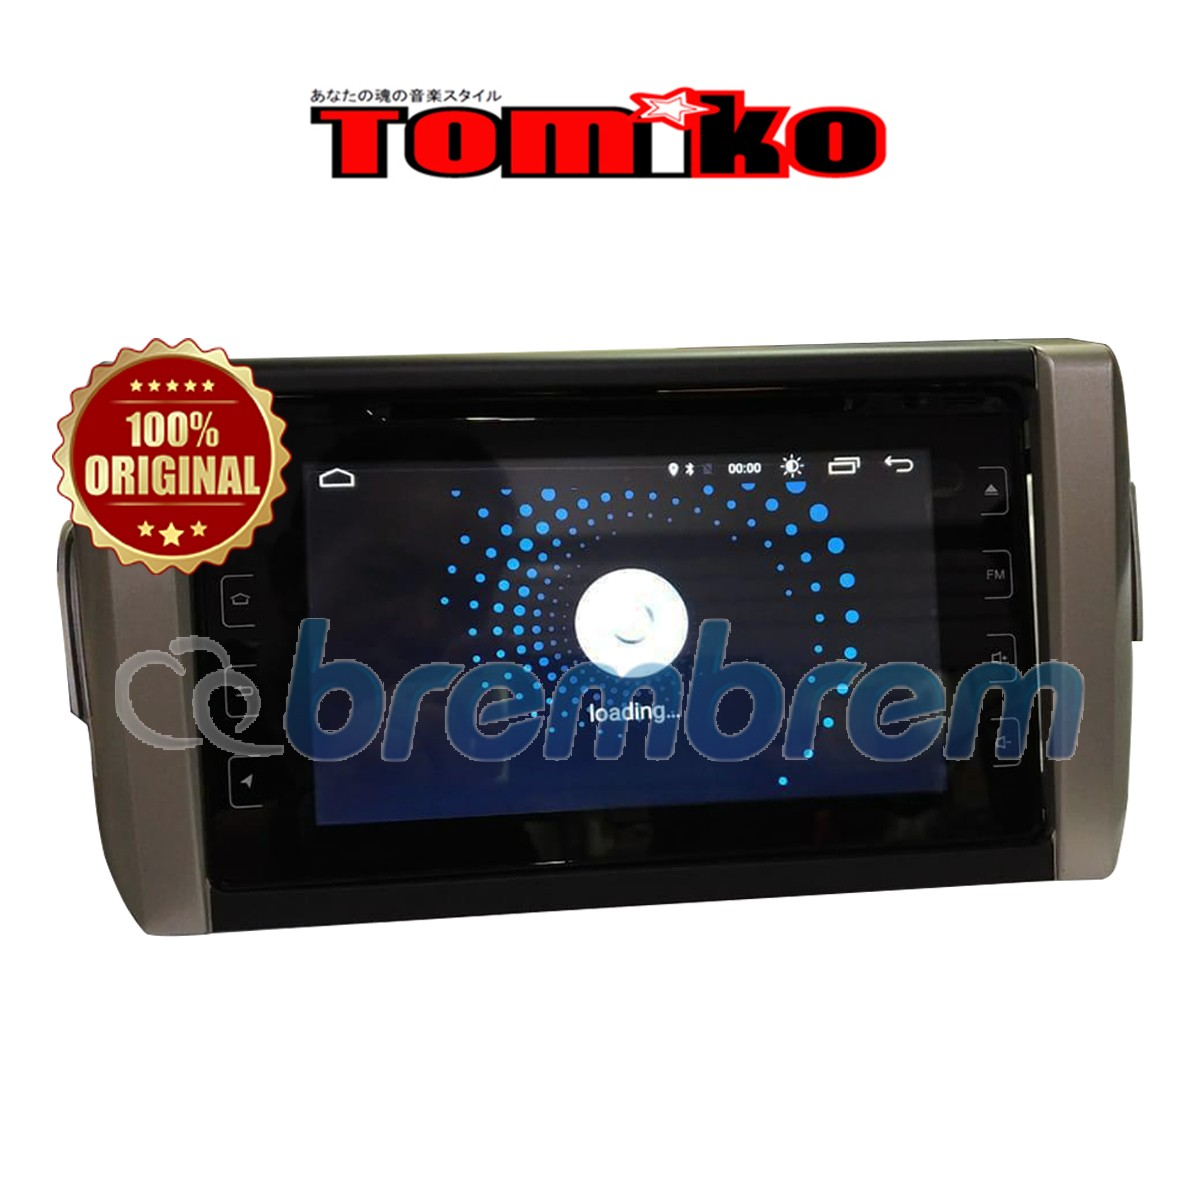 TOMIKO ANDROID 4G LTE NEW INNVOVA REBORN 8 INCH WITH DVD - HEADUNIT OEM